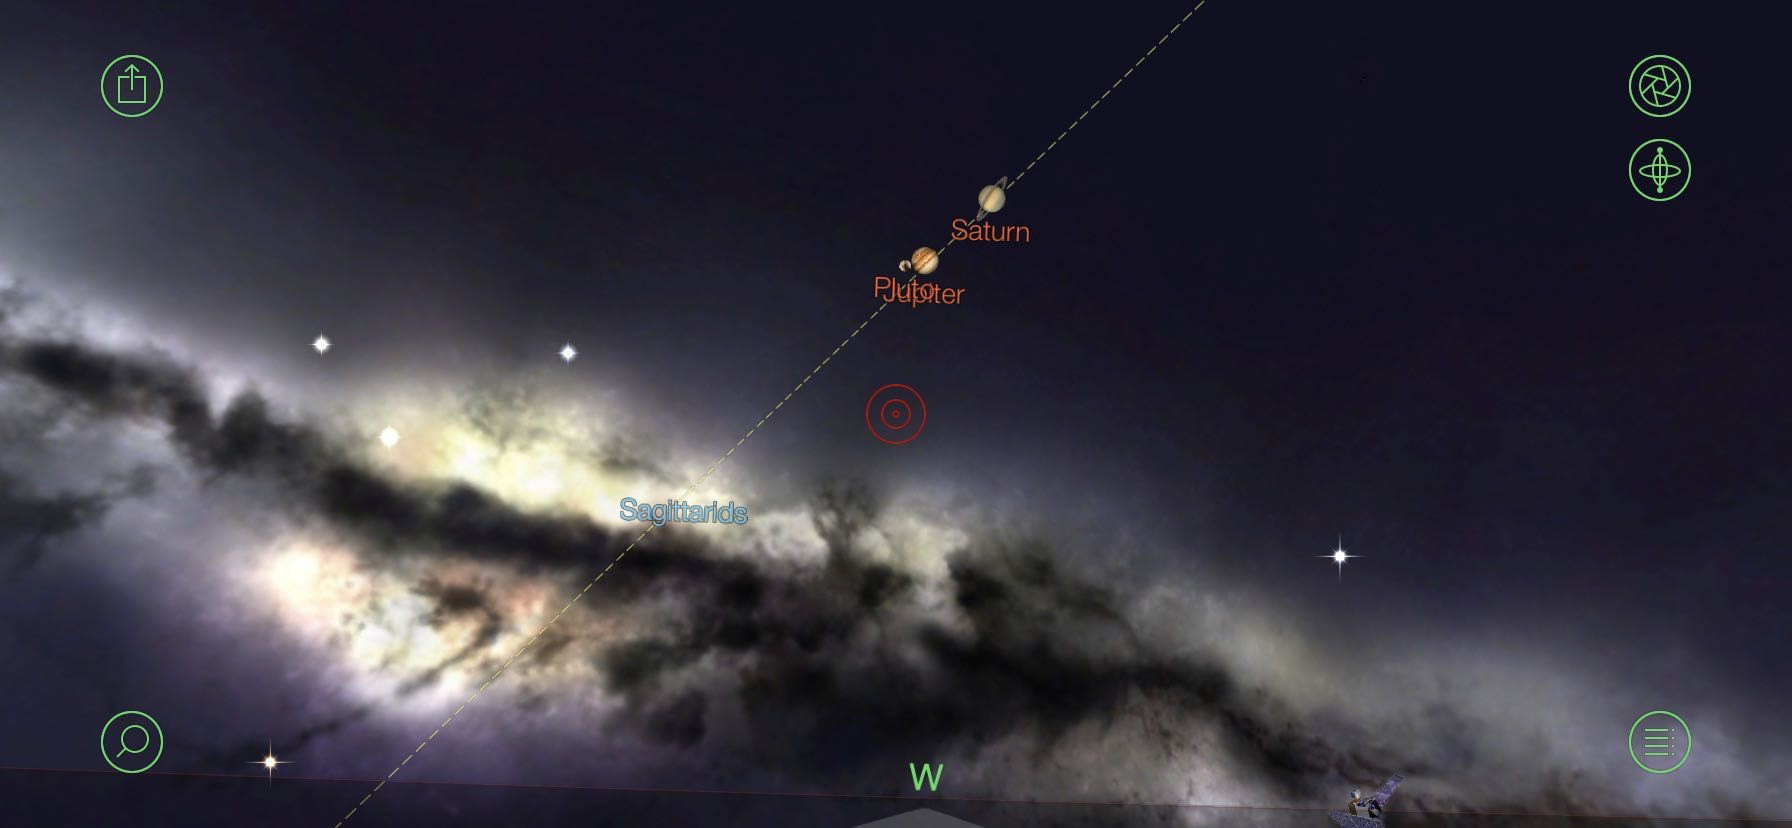 Star map featuring Saturn and Jupiter near the galactic core.